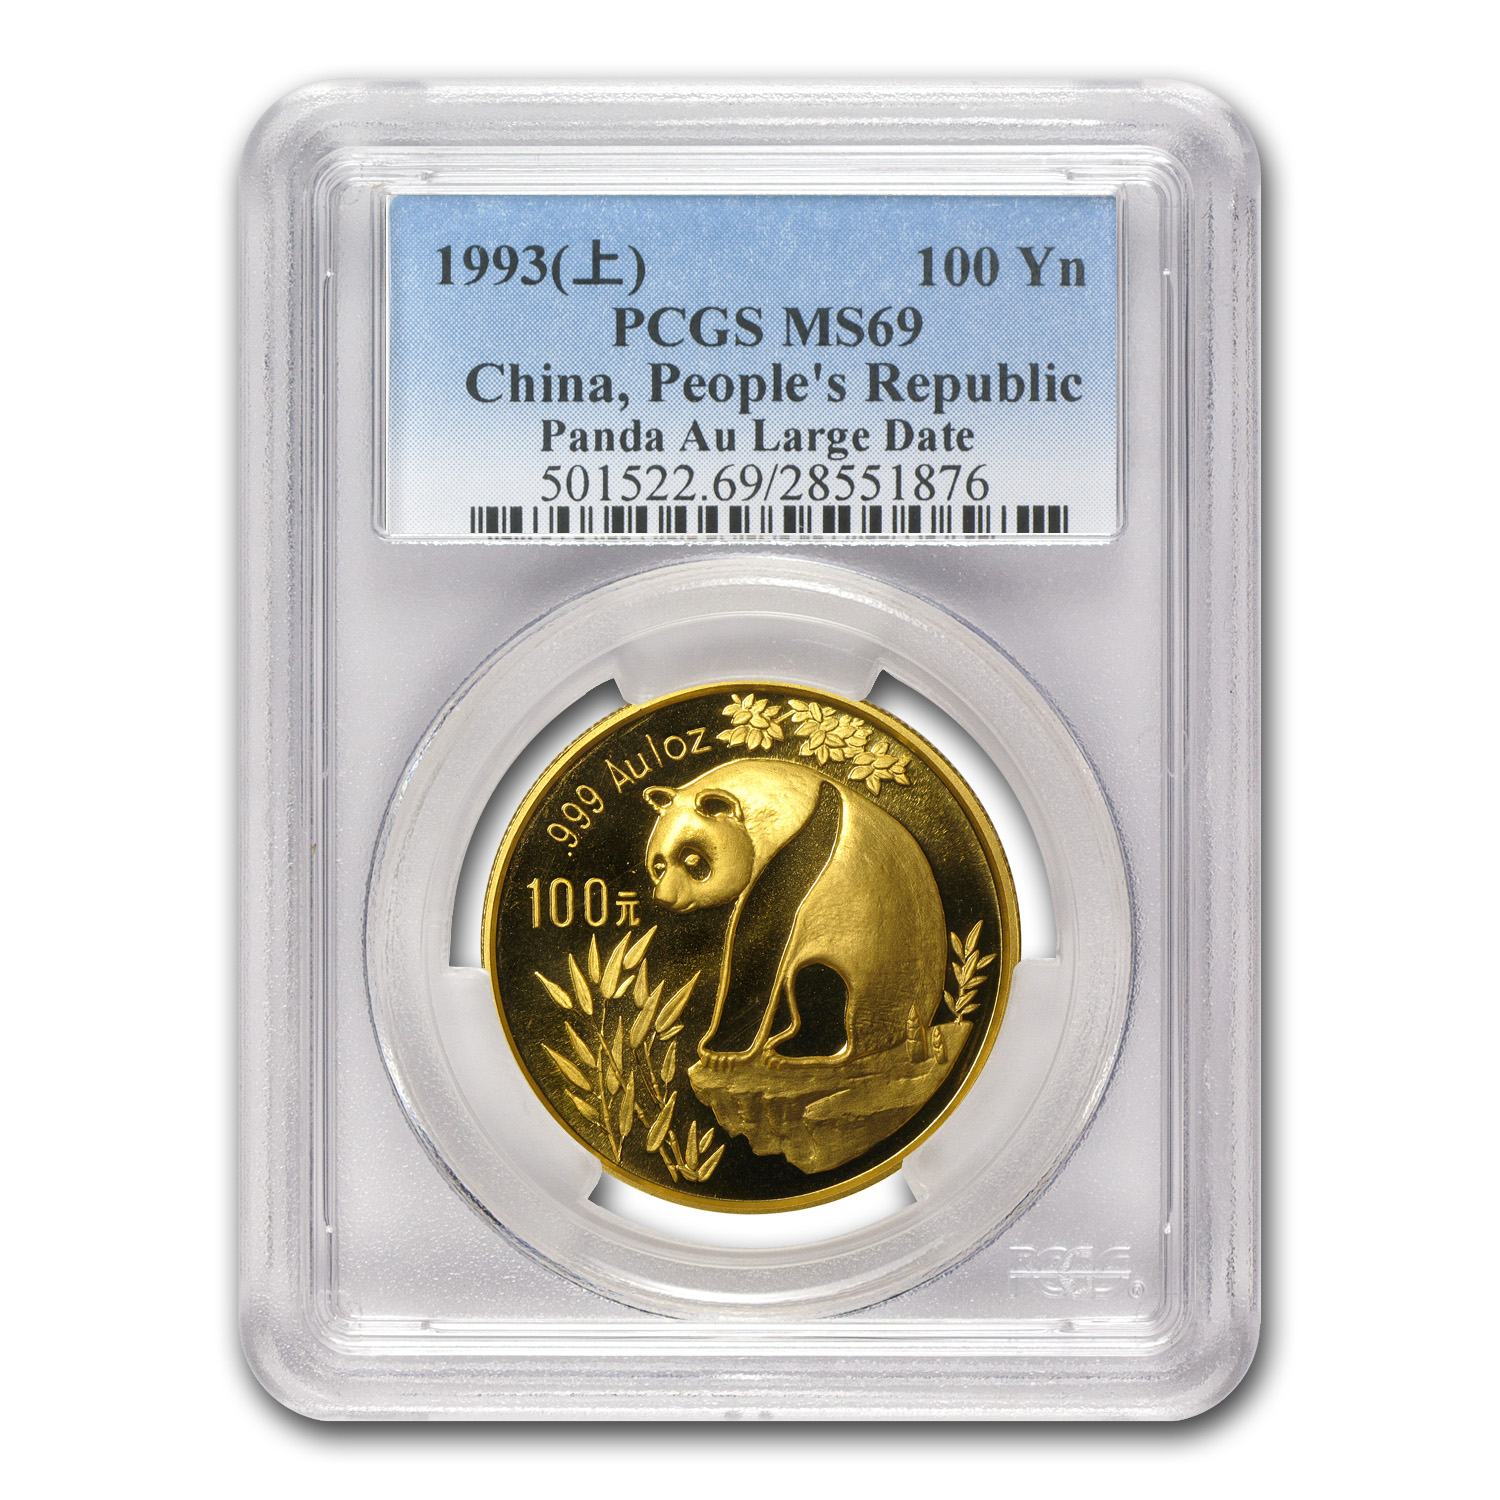 1993 1 oz Gold Chinese Panda - Large Date MS-69 PCGS